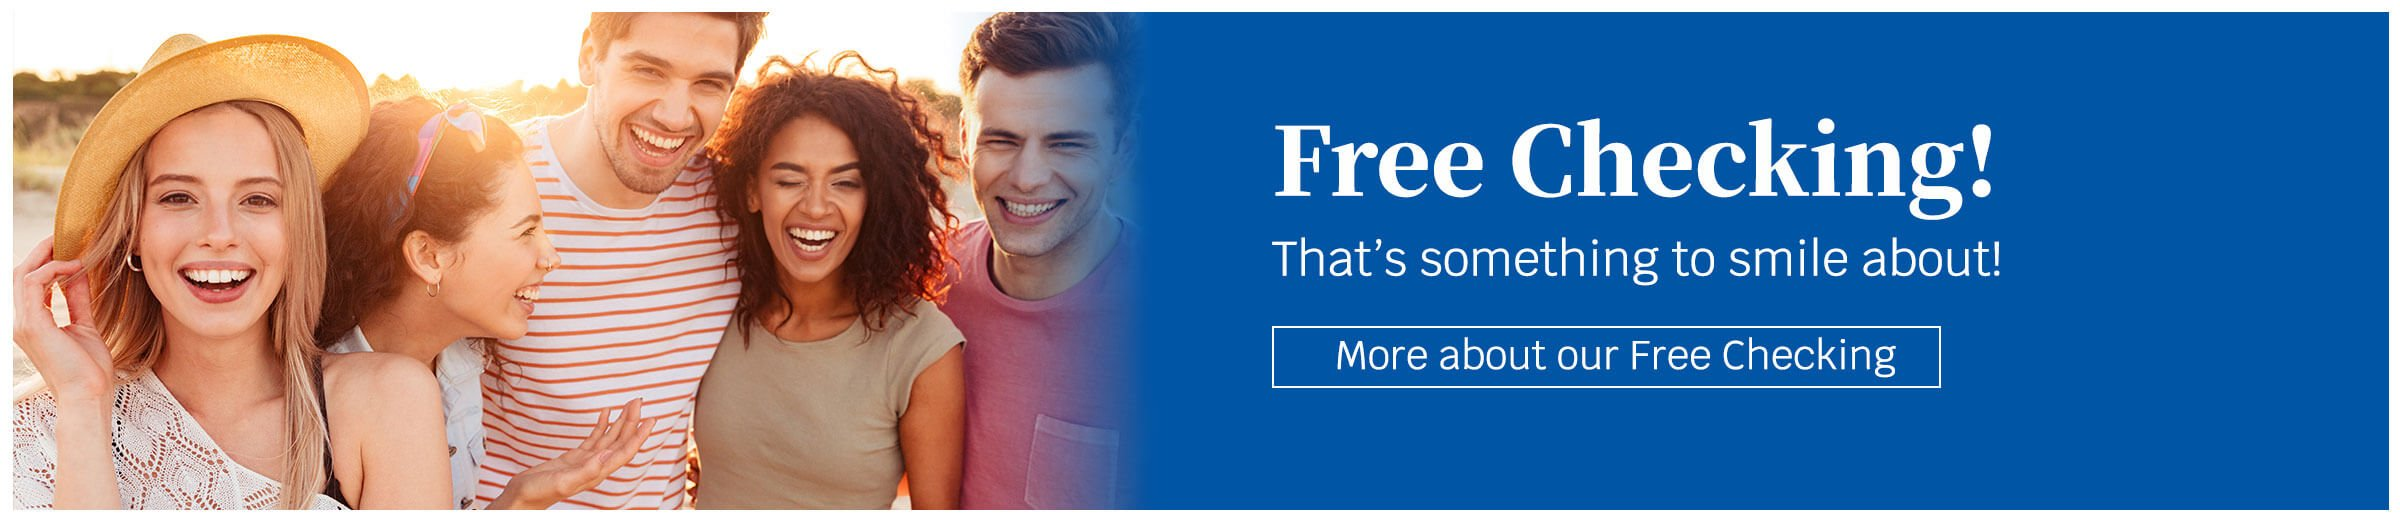 Free Checking! That's something to smile about! More about our free checking